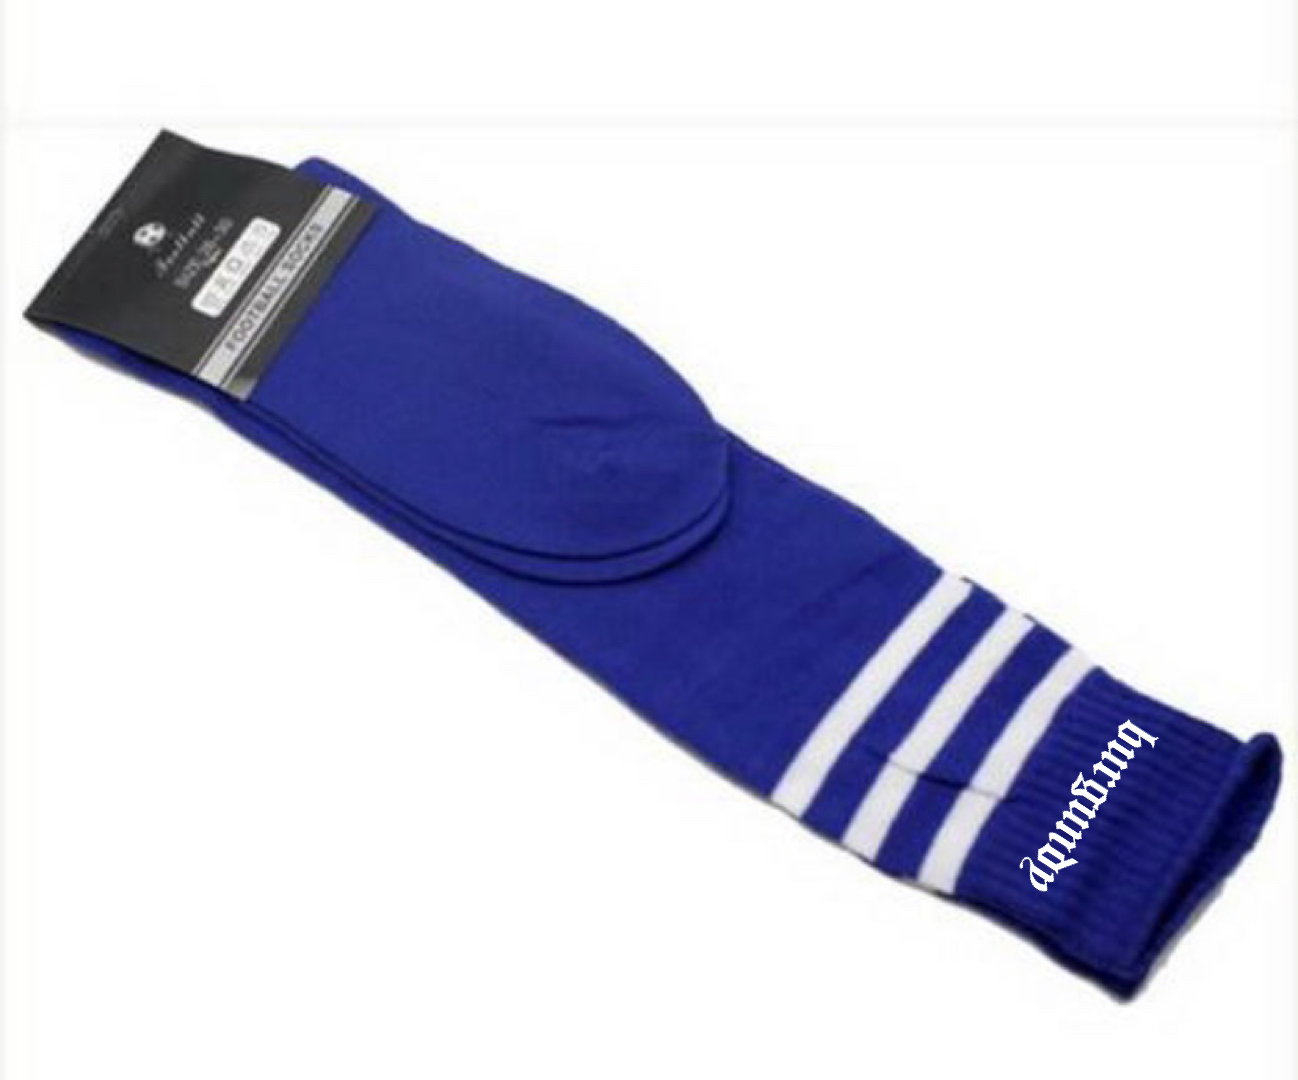 7. Striped Tubed Socks (Embroidered)